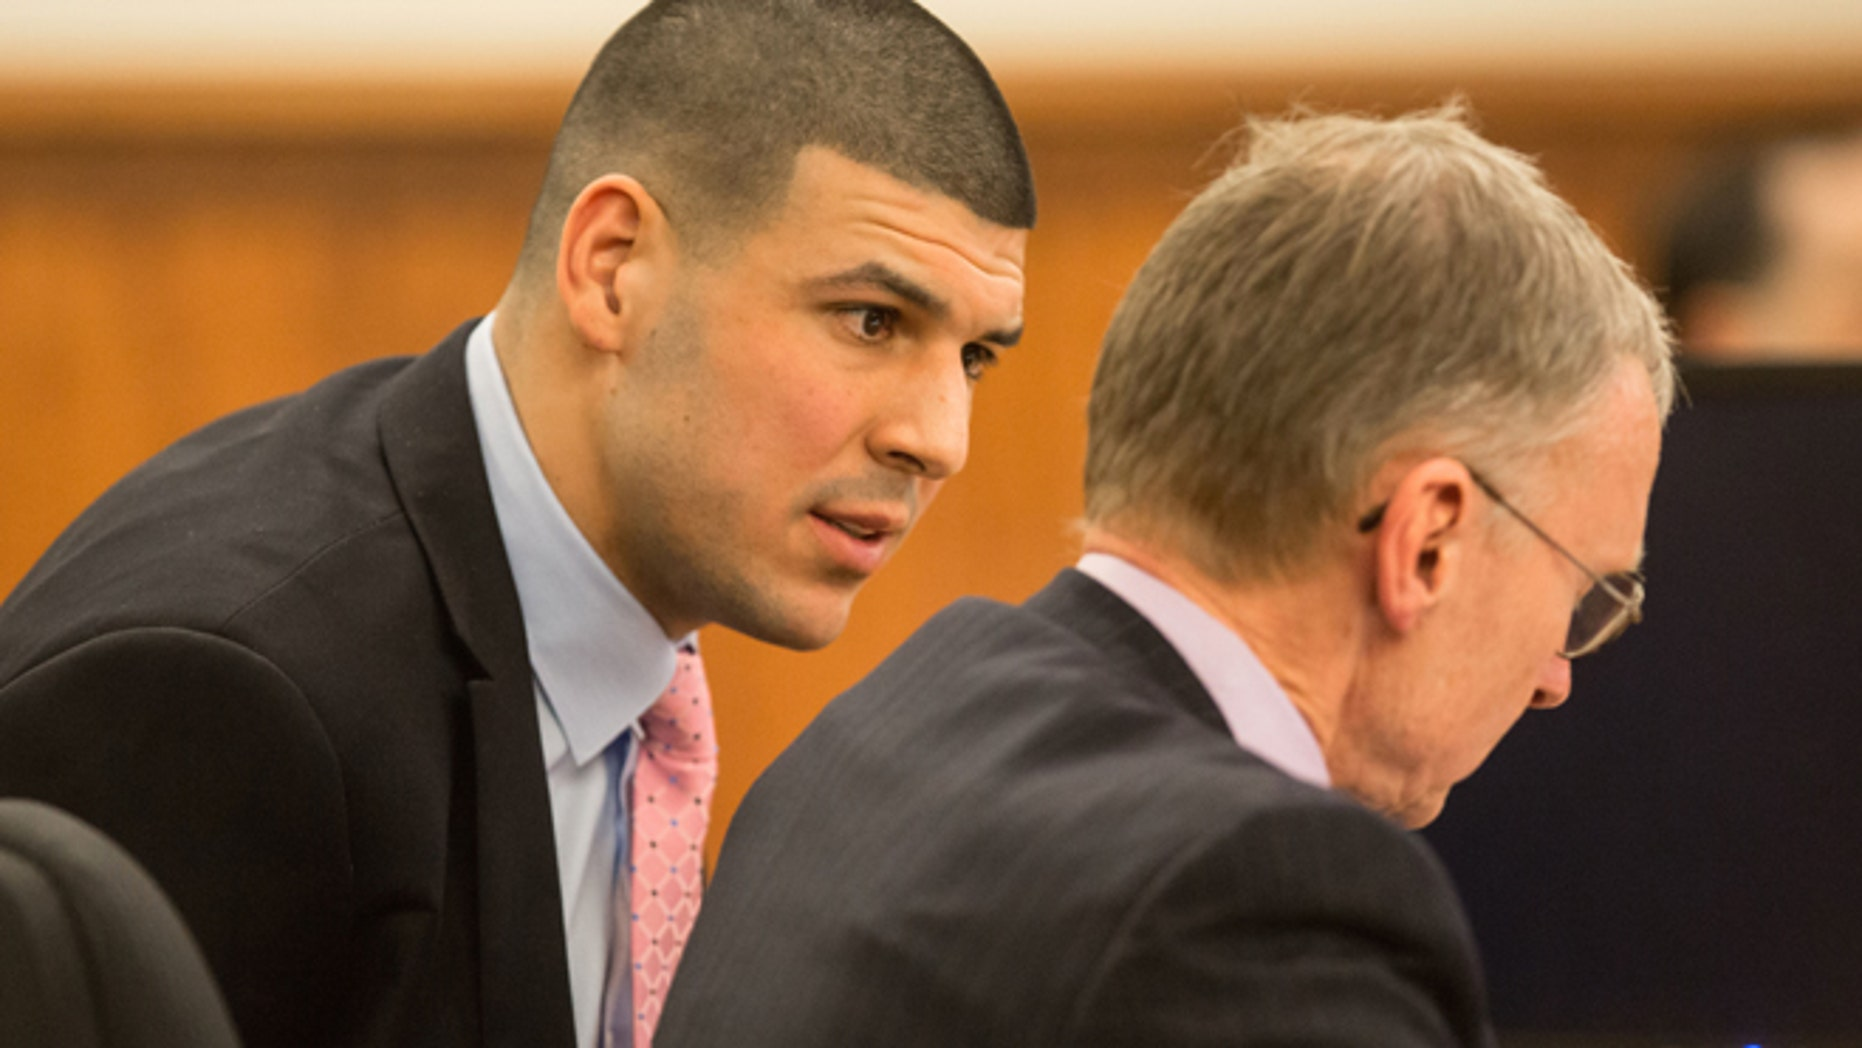 March 2: Former New England Patriots tight end Aaron Hernandez, left, speaks with his attorney Charles Rankin during his murder trial at Bristol County Superior Court in Fall River, Mass.